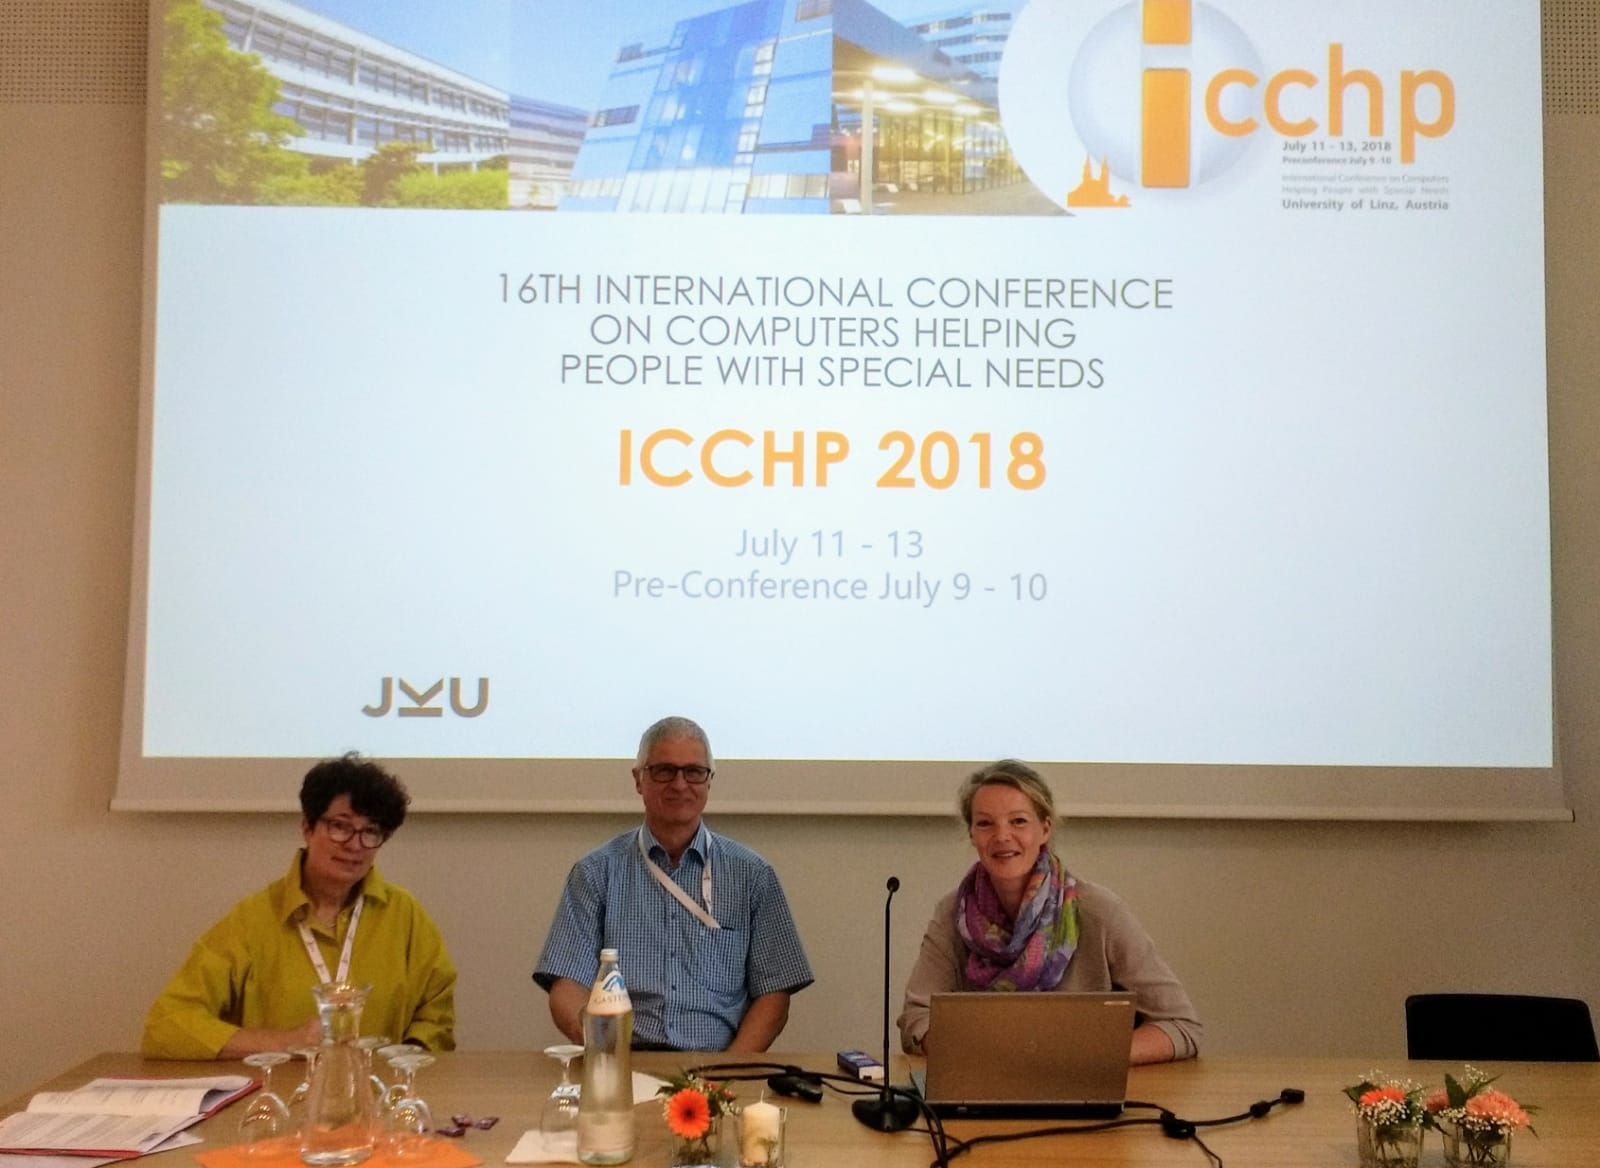 Cordula Edler, Christian Bühler and Susanne Dirks at the ICCHP conference